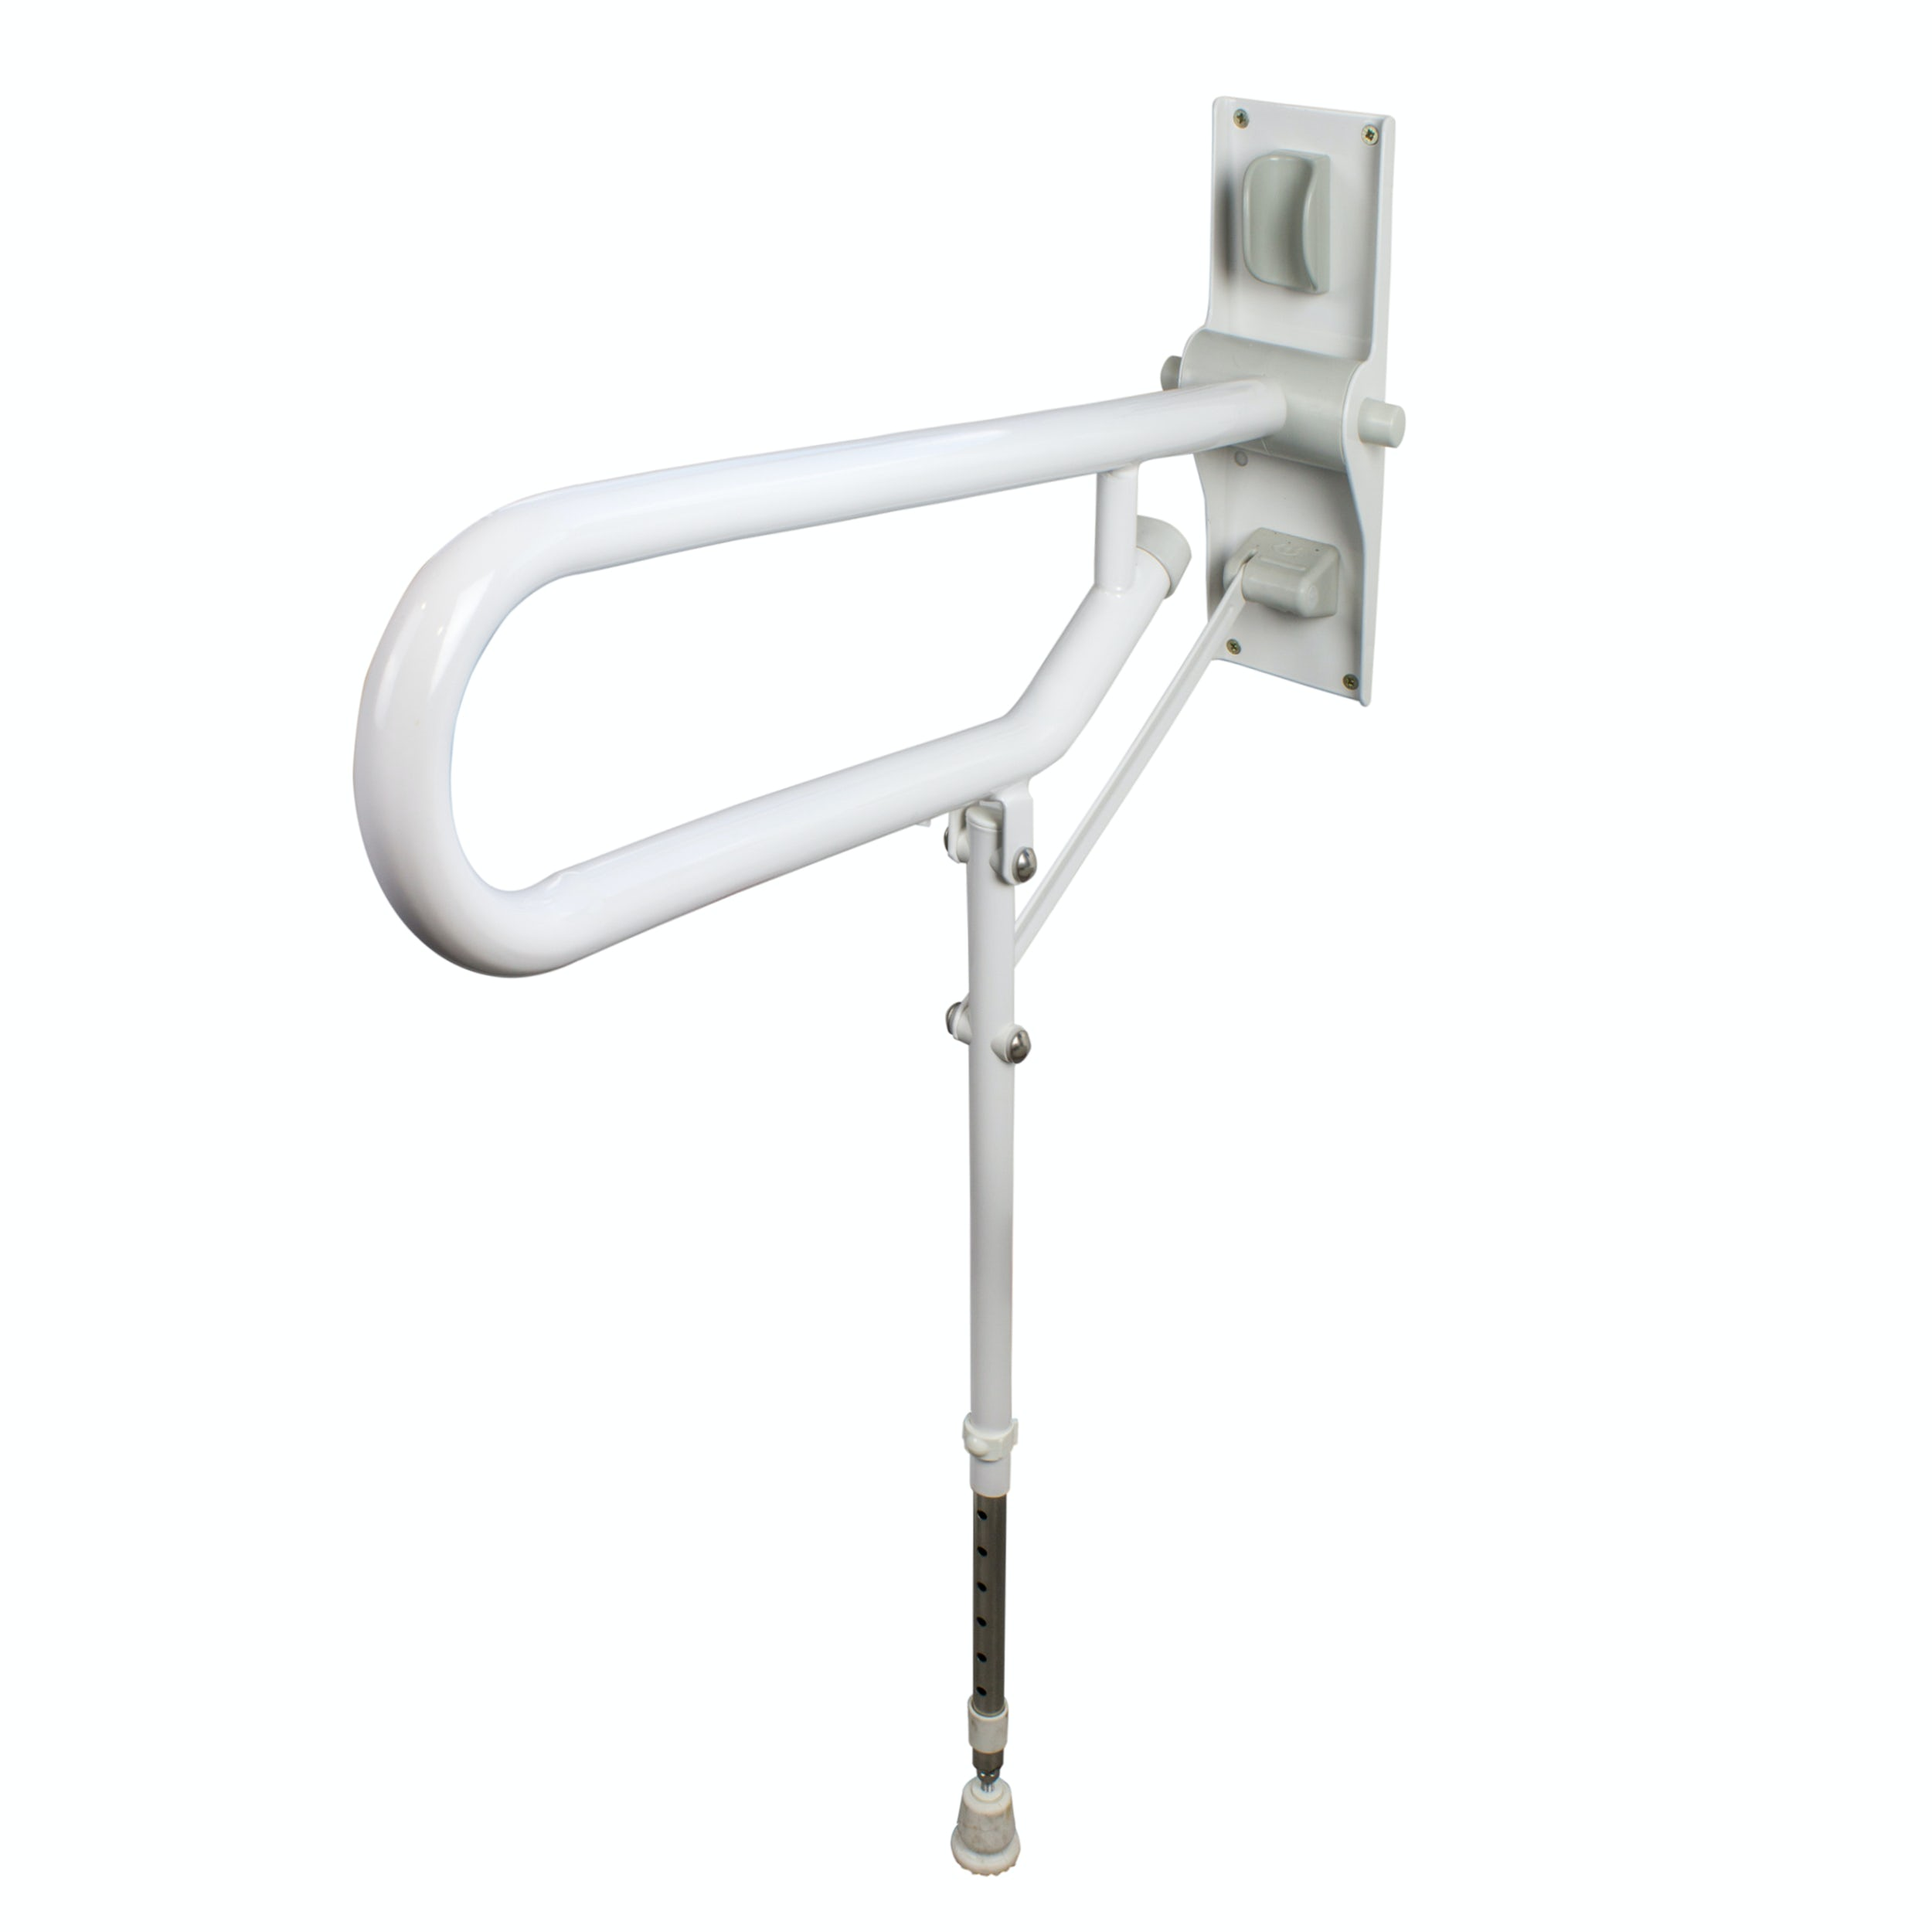 AKW Folding Support Grab Rail With Adjustable Leg White